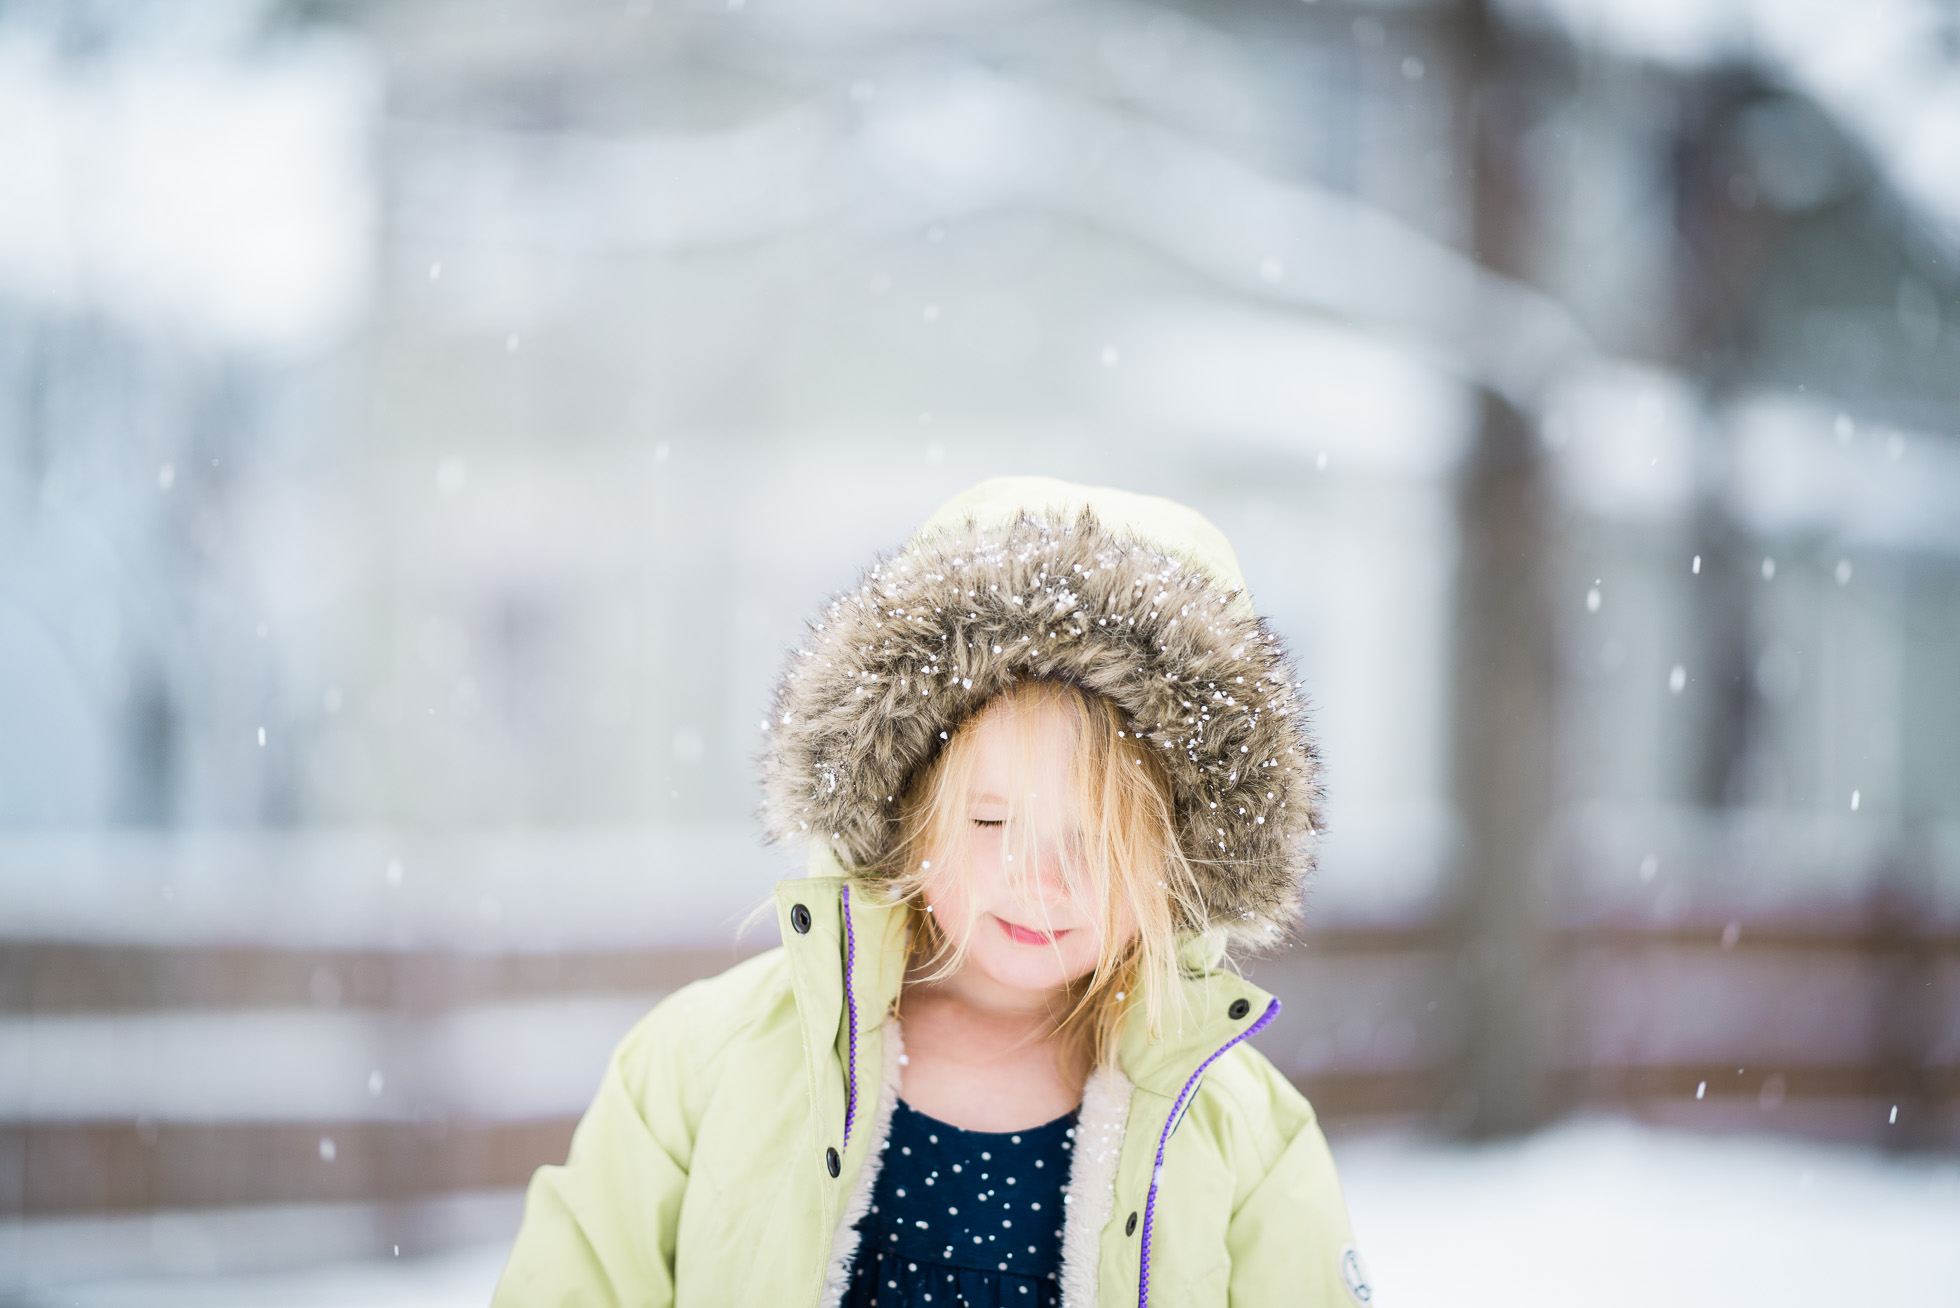 sweet-everyday-photo-of-little-girl-and-snow-falling-by-sarah-wilkerson-4649